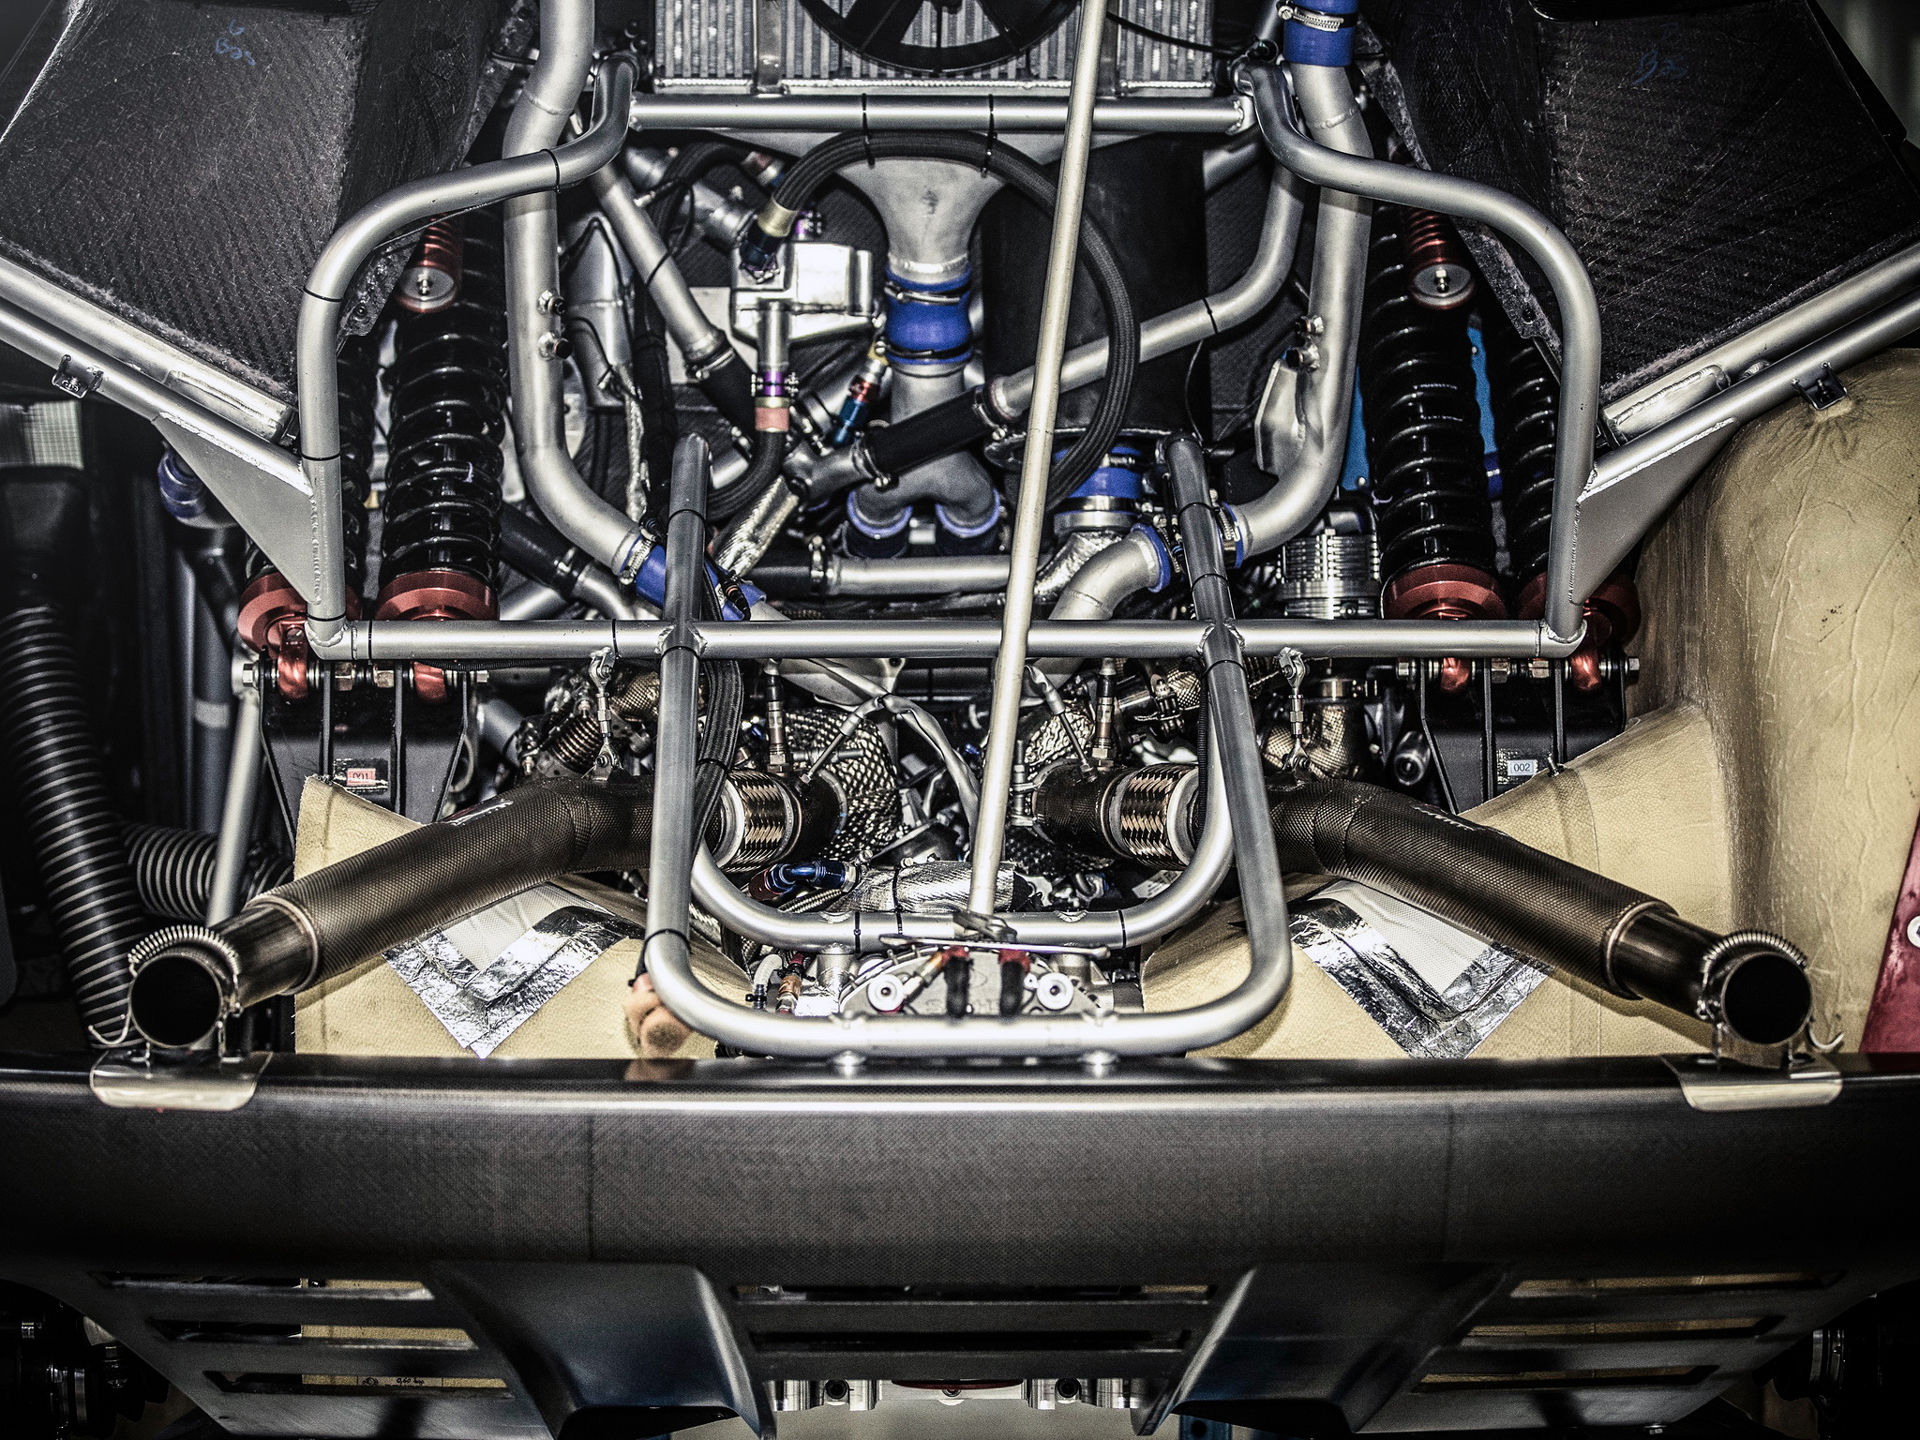 Peugeot 2008 DKR 2015 - under the hood / sous la capot